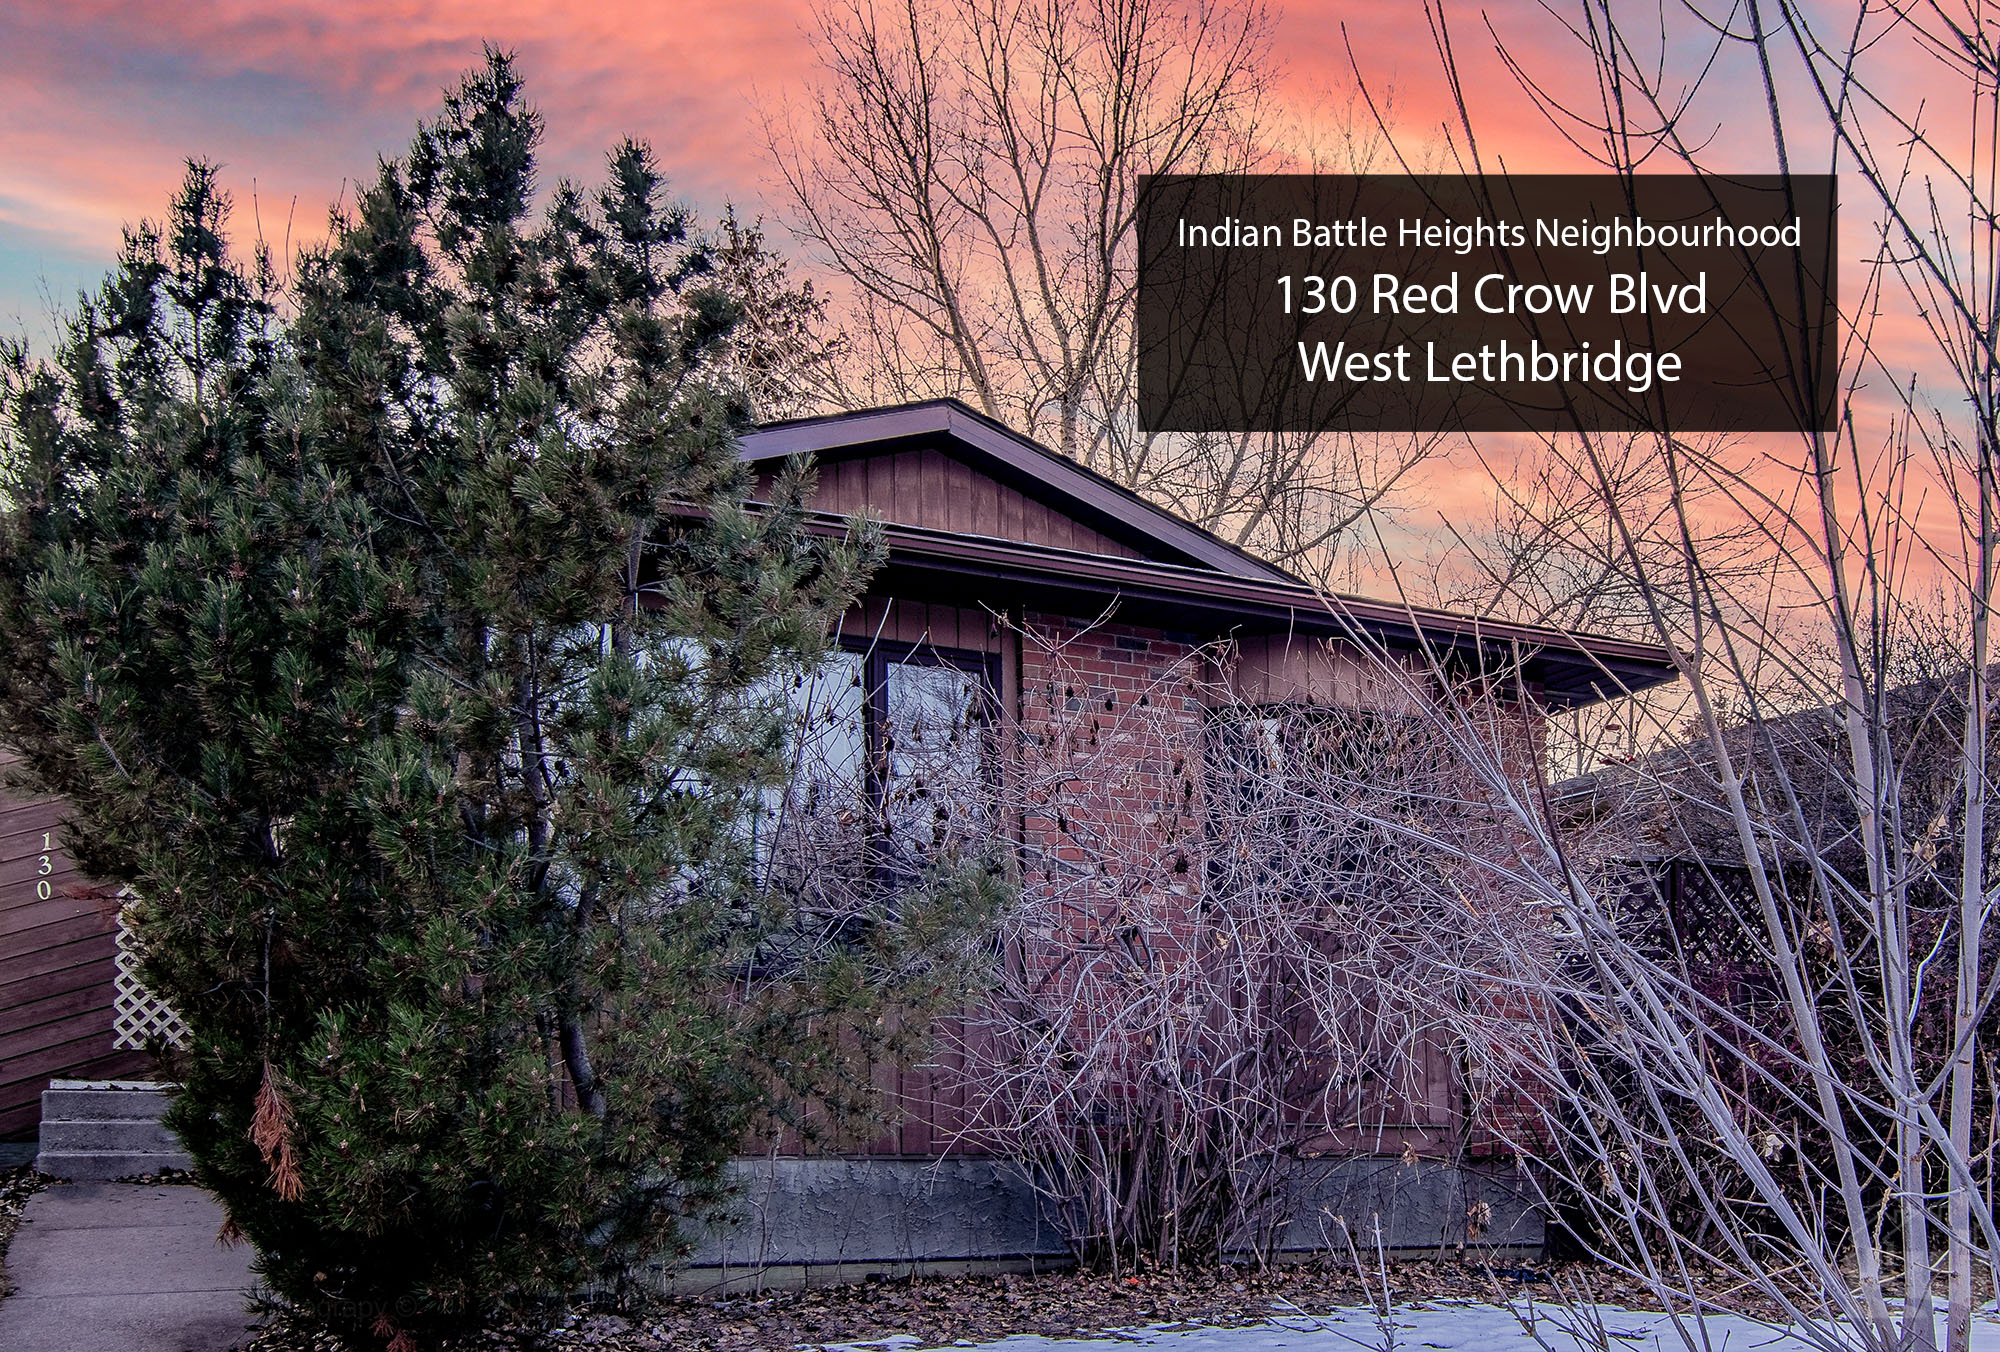 130 Red Crow Blvd West Lethbridge Cover image